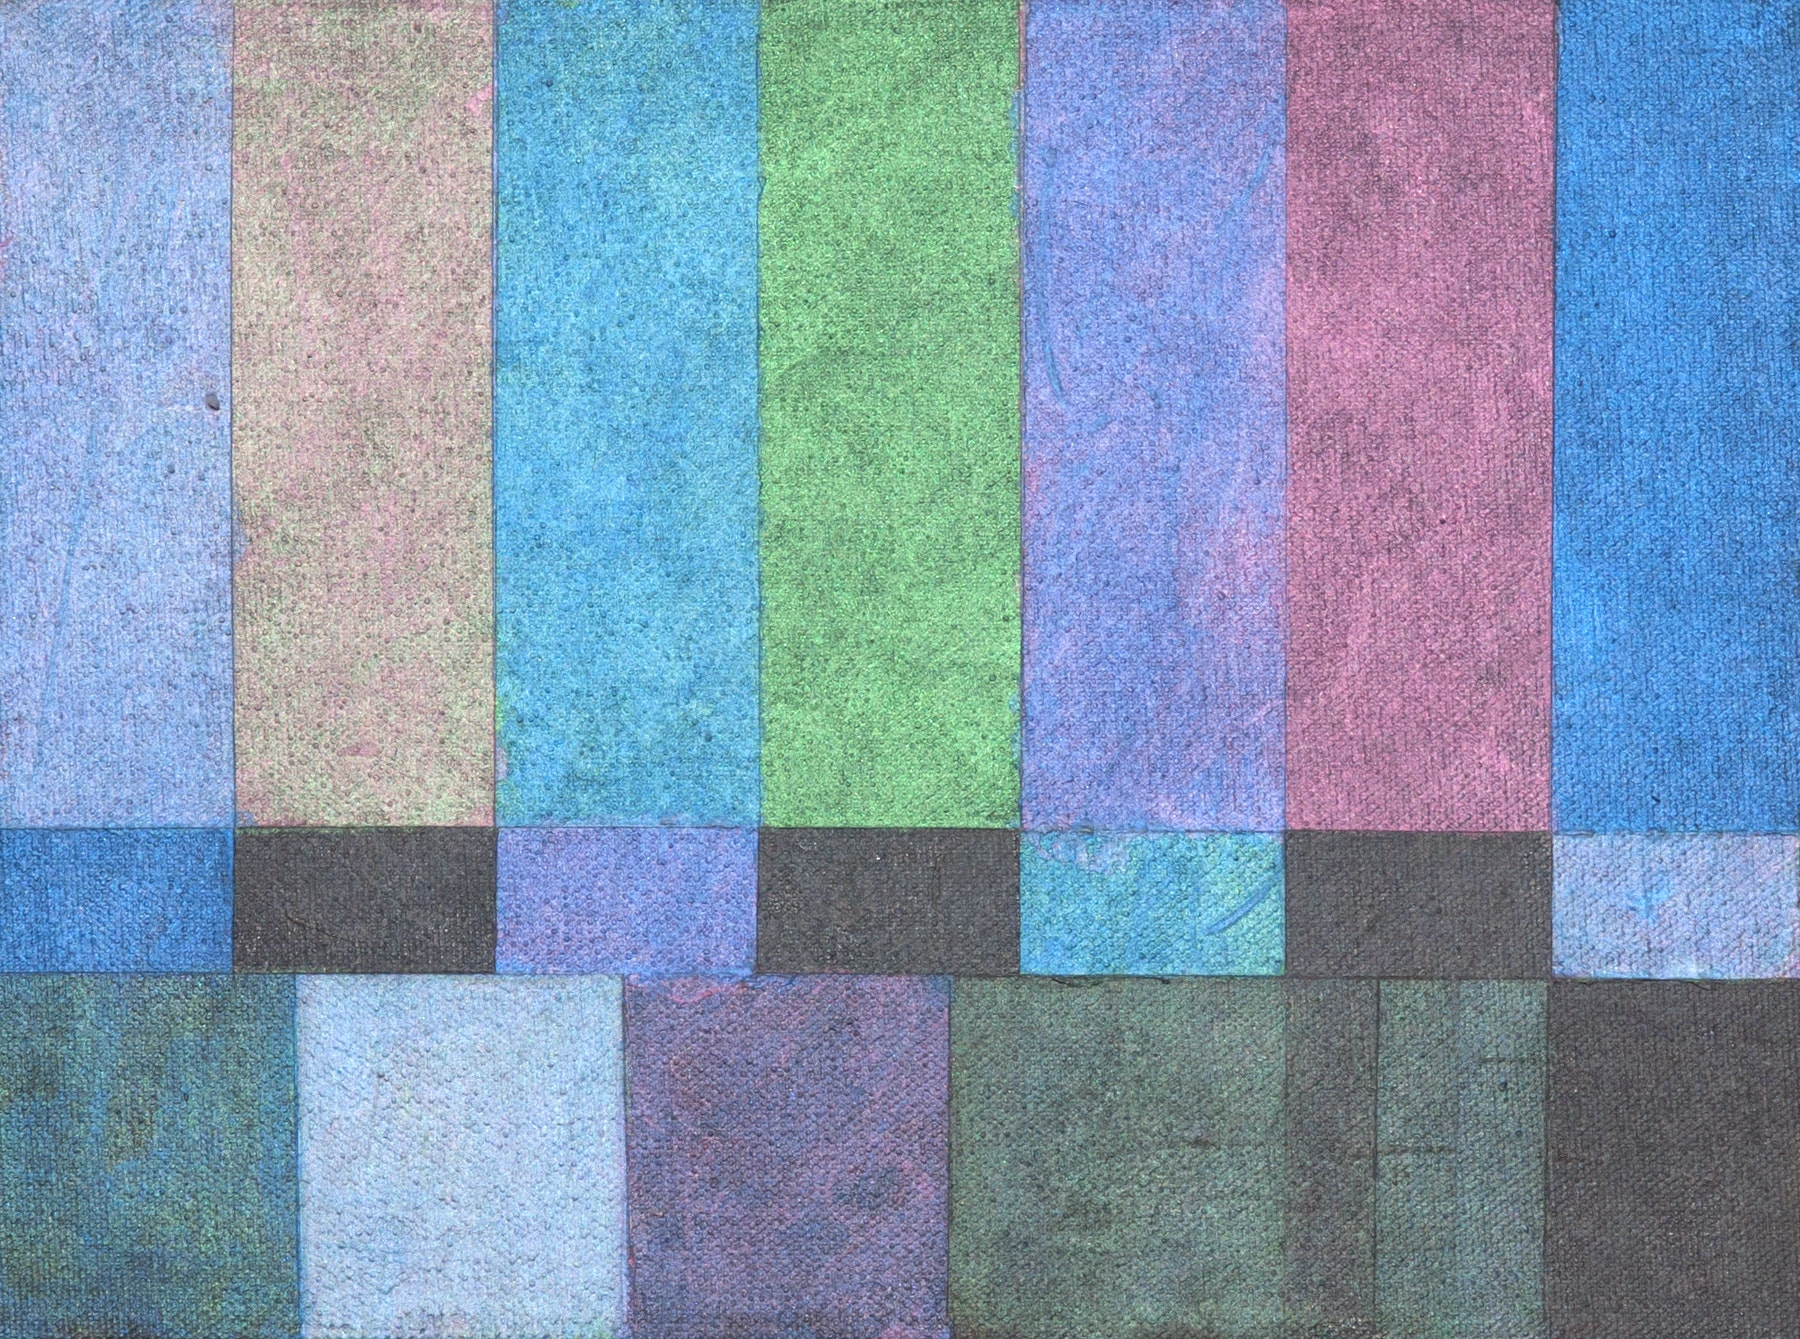 TV Screens NTSC RGB 1 out of 6, 2017 by Davide Cantoni